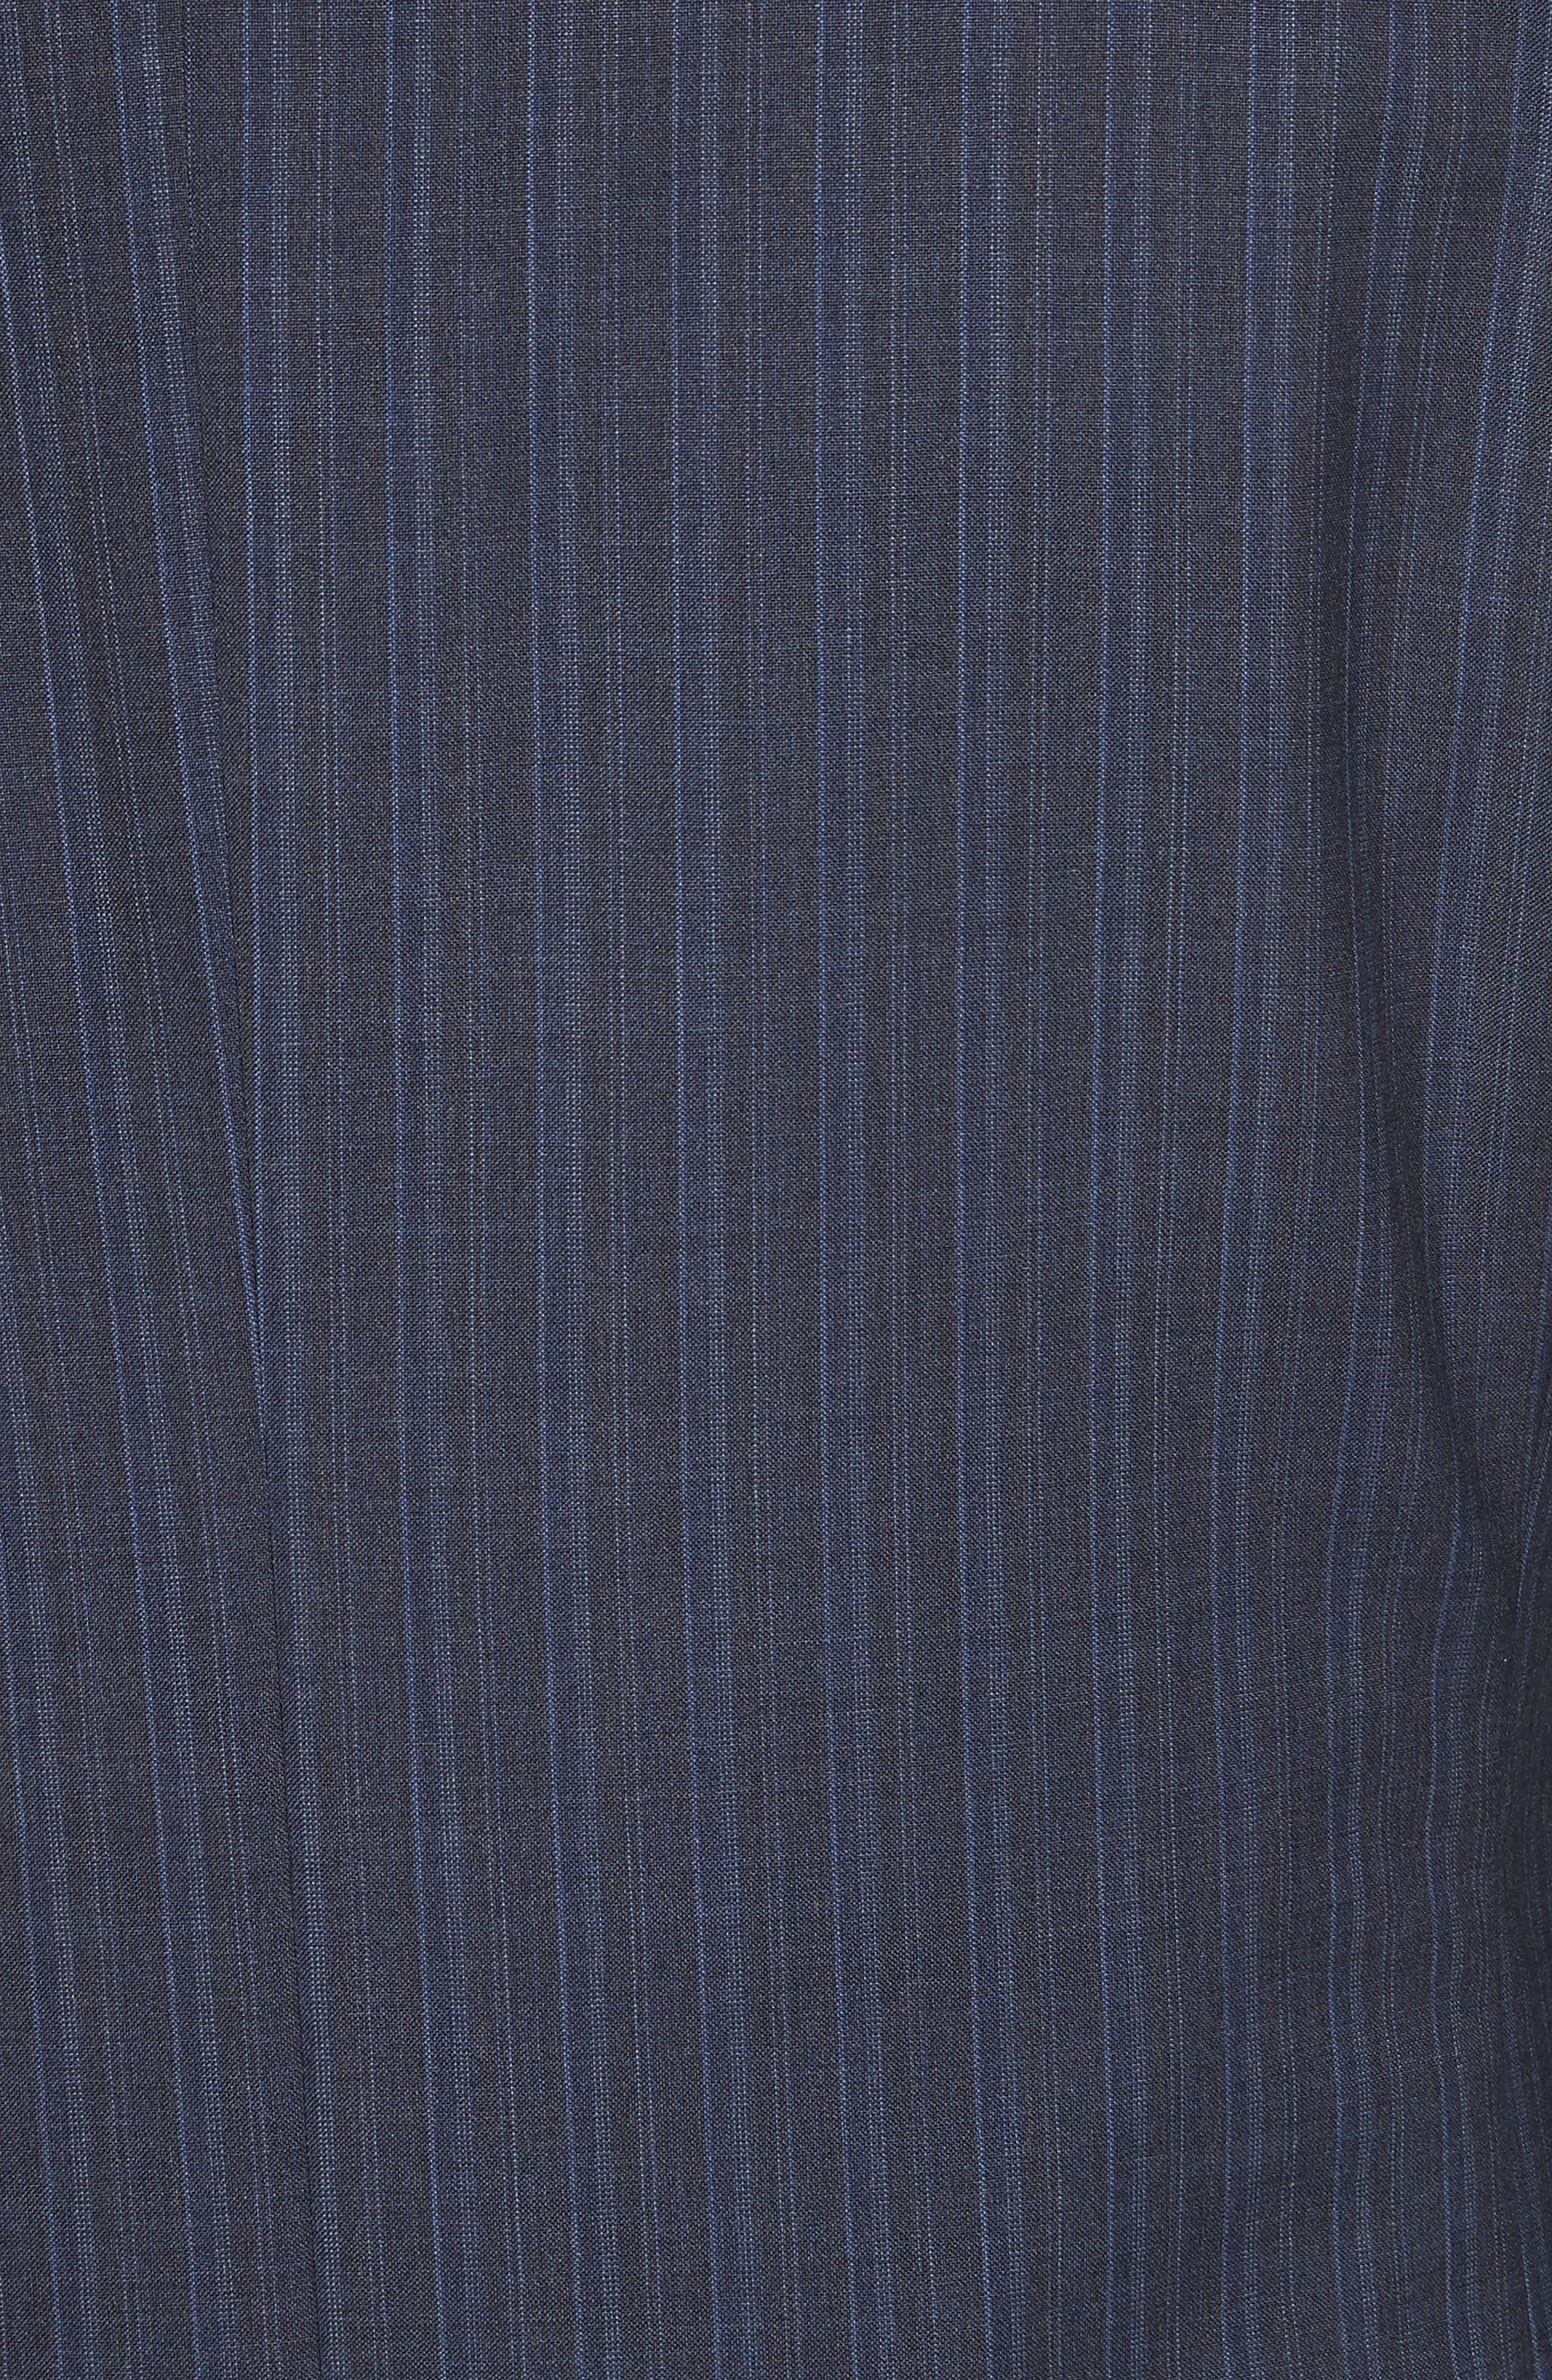 Classic Fit Stripe Wool Suit,                             Alternate thumbnail 7, color,                             Navy